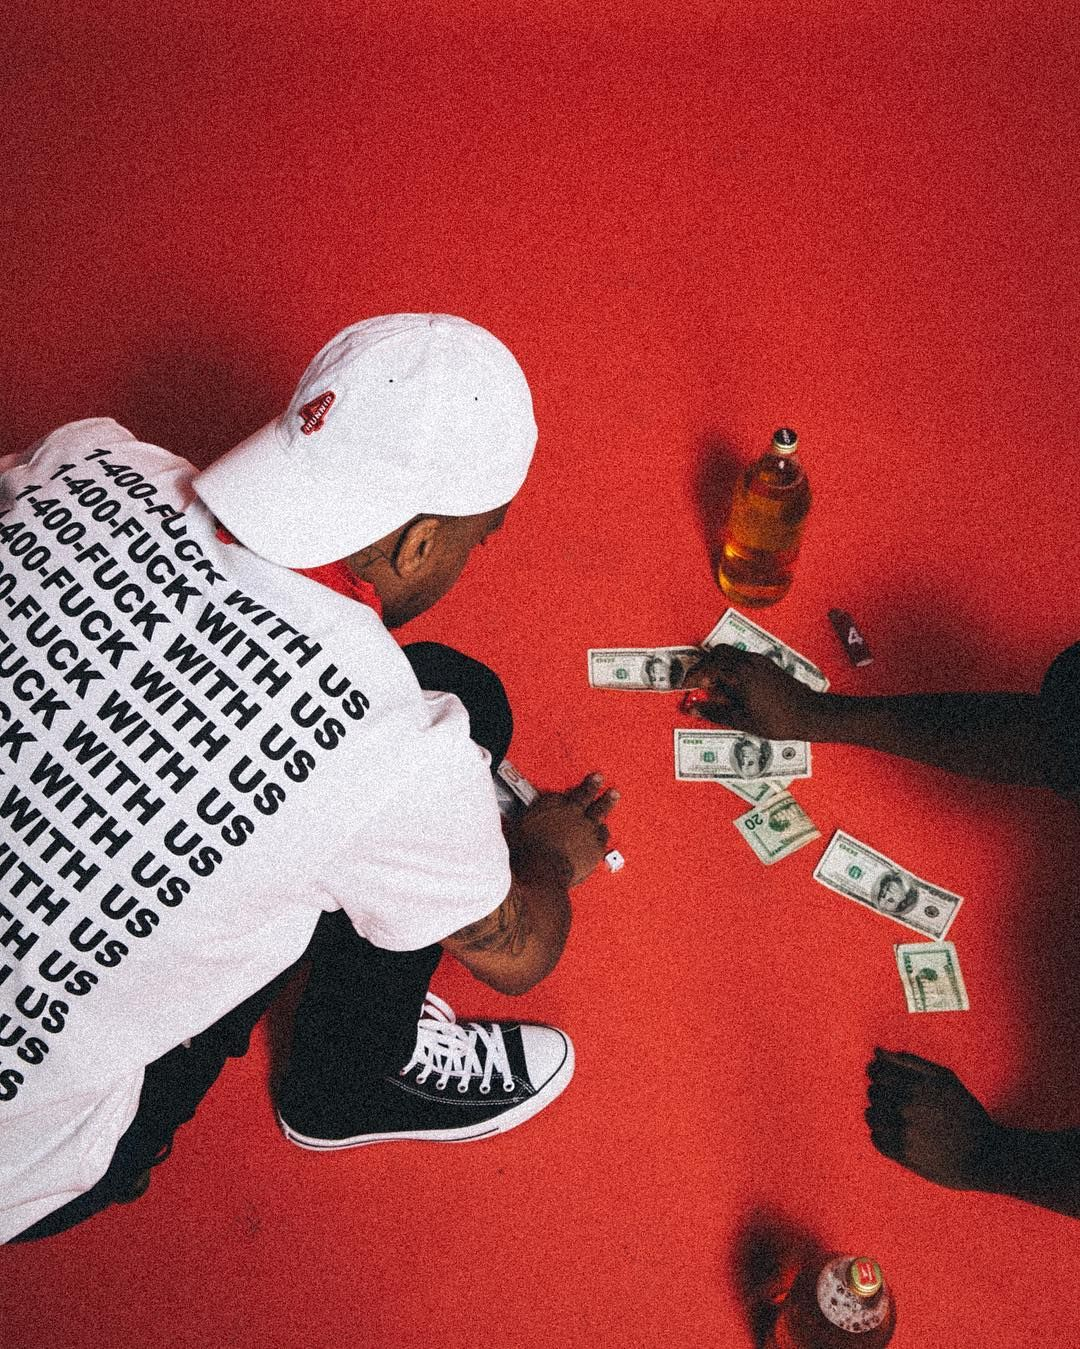 4HUNNID COLLECTION 002 DROPPING FRIDAY 5616 With images 1080x1349